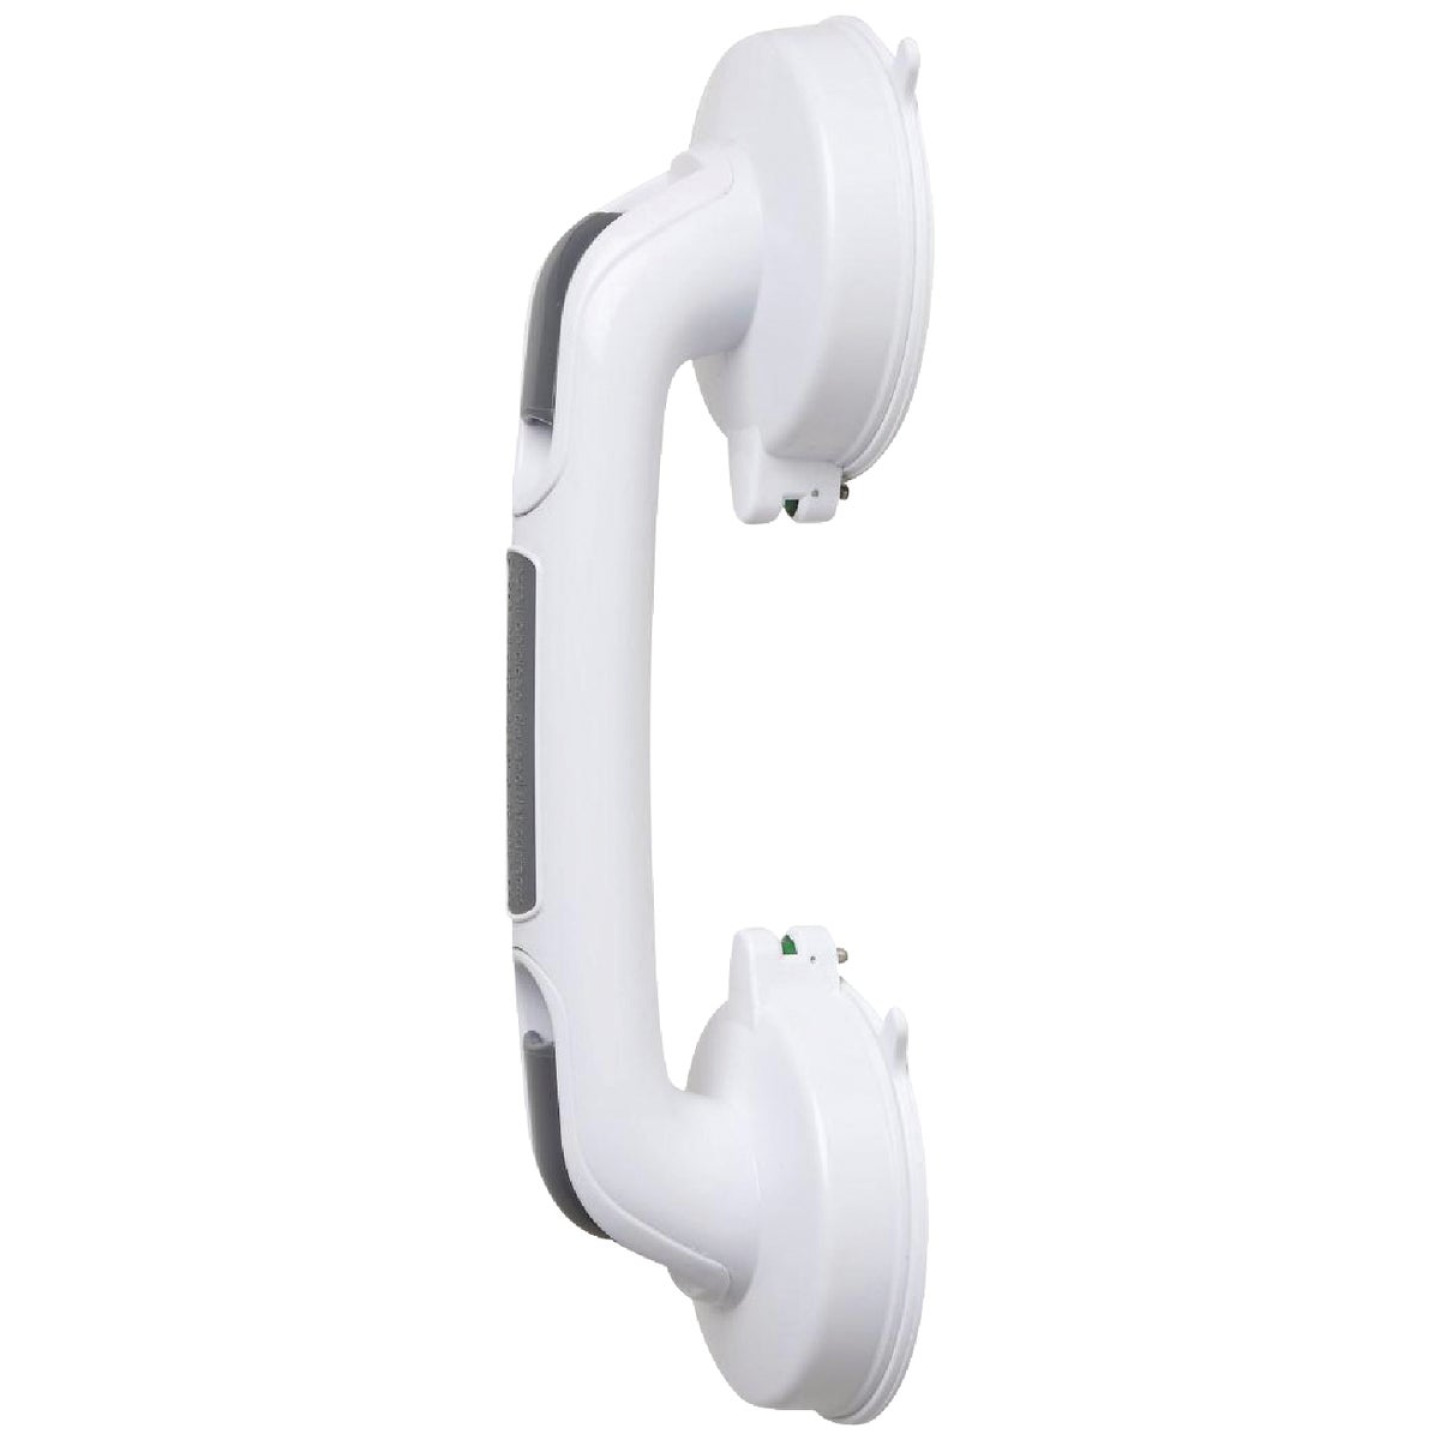 Medline Suction 12 In. Suction Cup Grab Bar, White Image 1